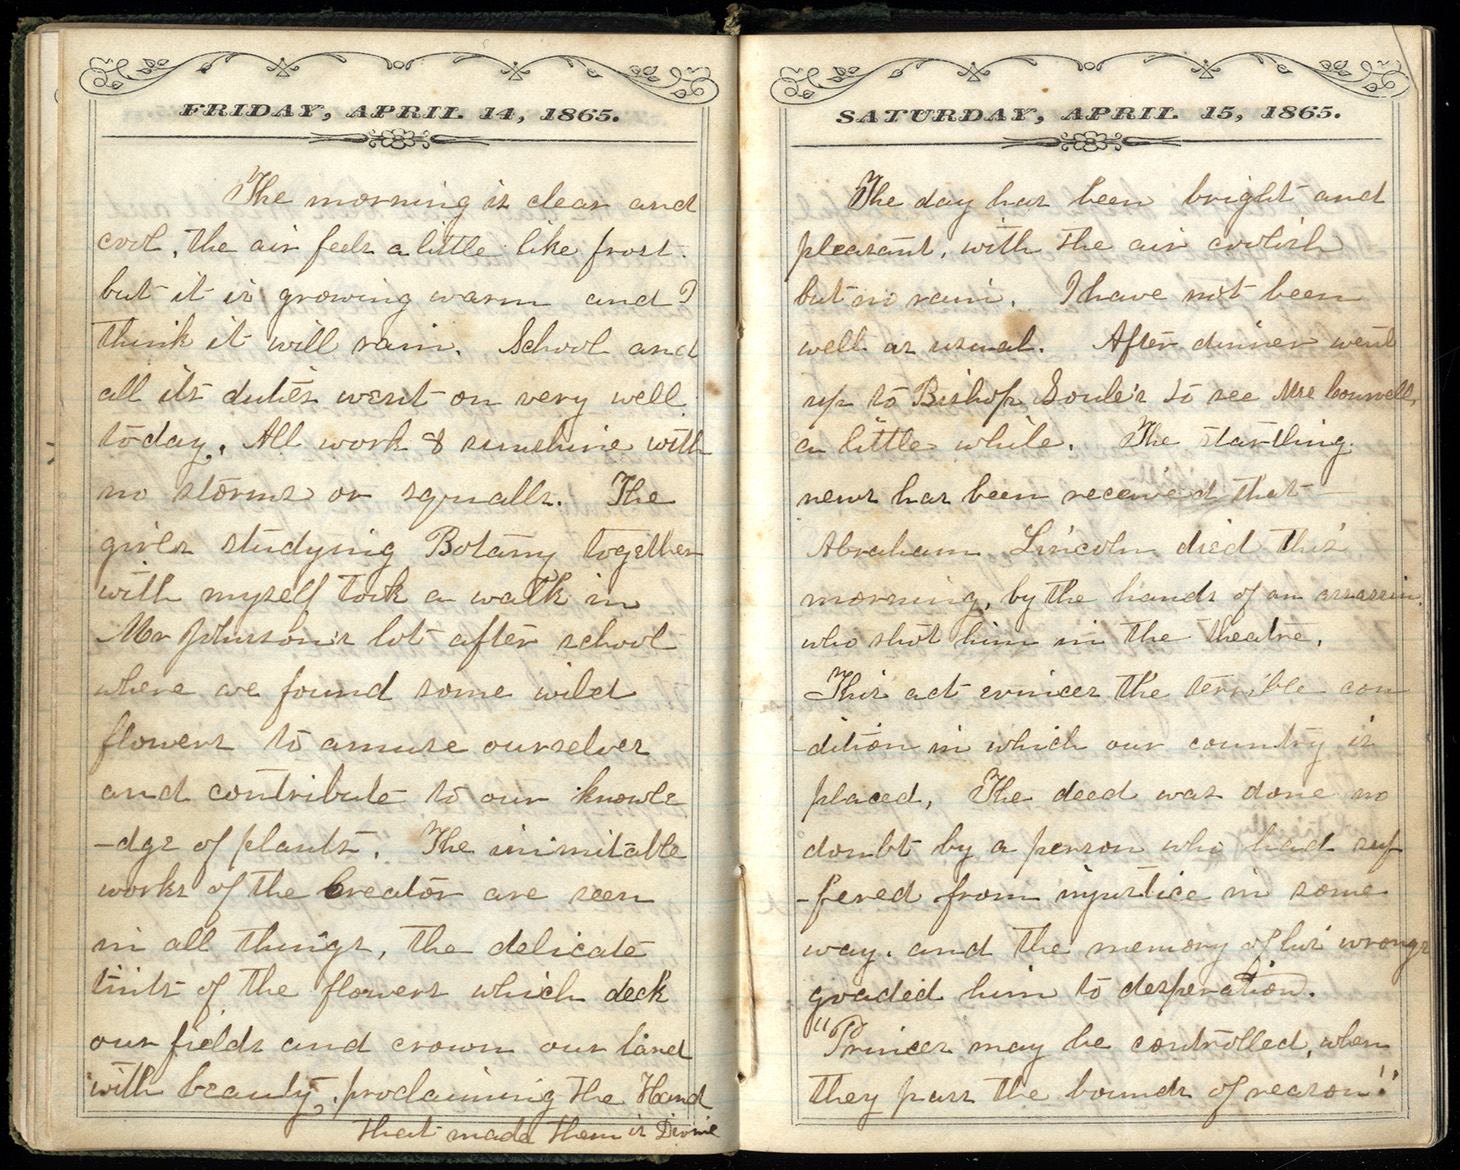 Handwritten diary pages with dates of April 14 and April 15, 1865, printed at top